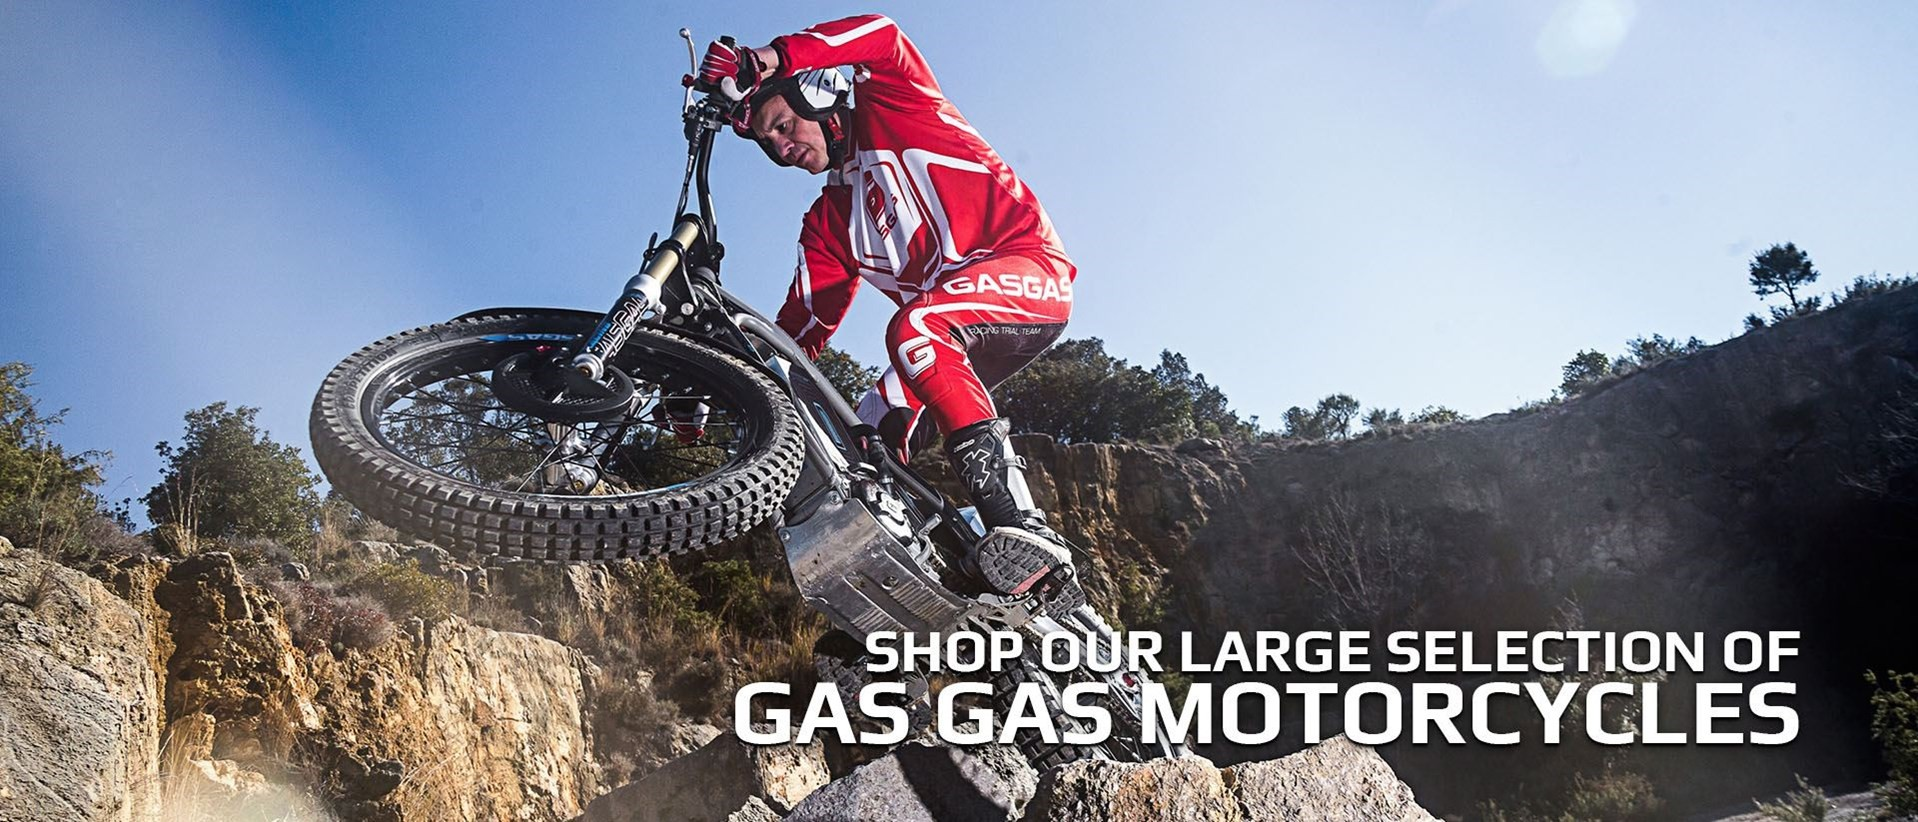 Shop New & Used Gas Gas Motorcycles for sale at Carson Motorsports in Carson City, NV